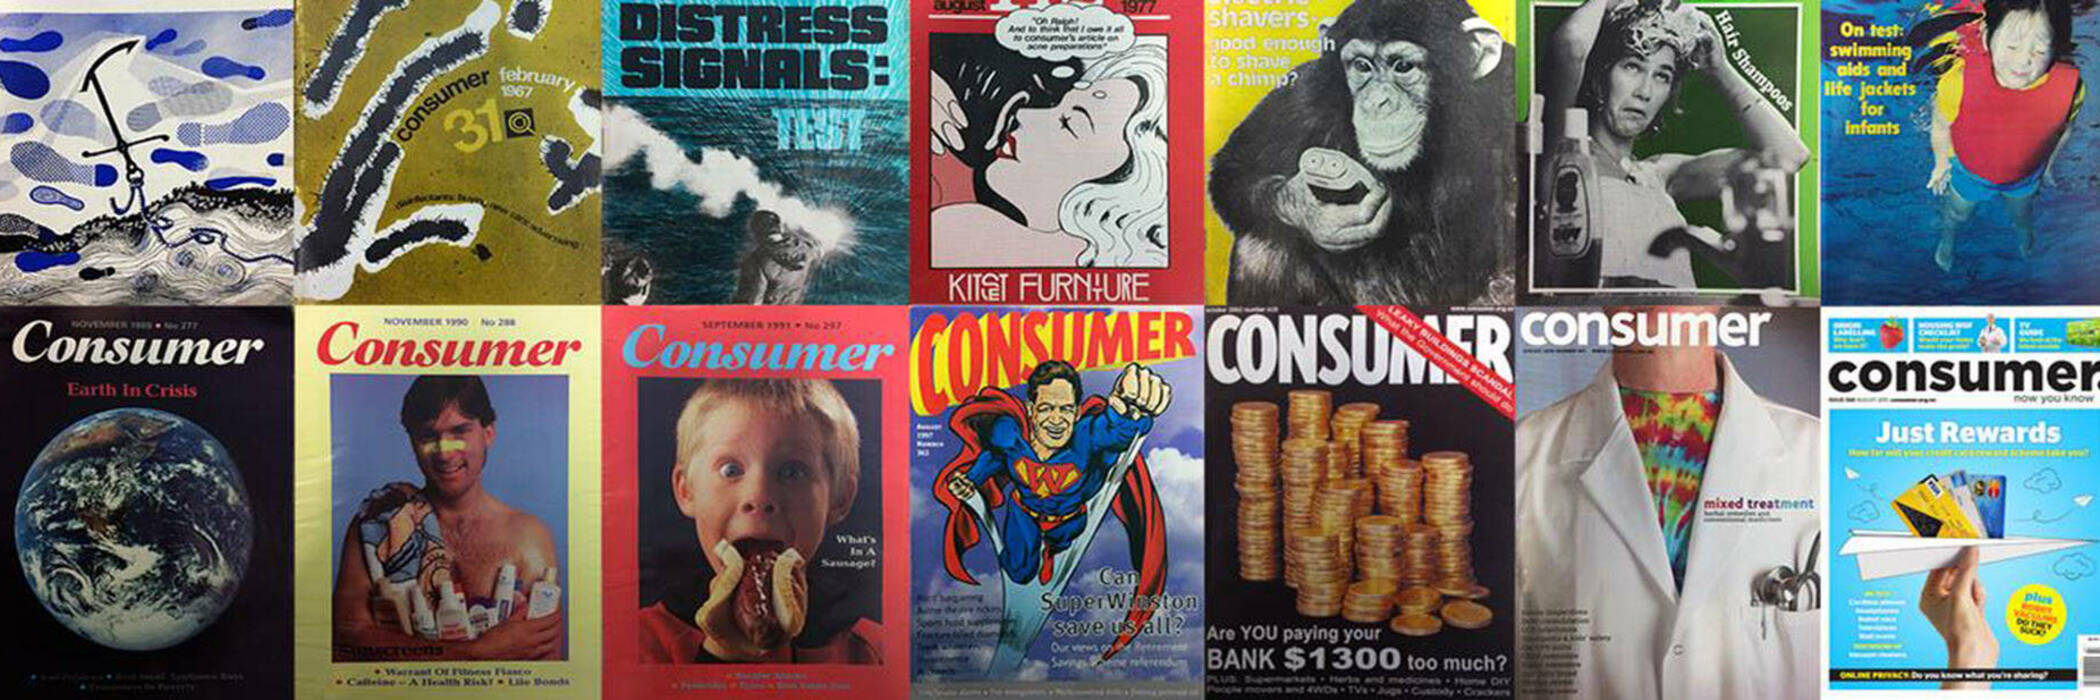 Consumer magazine covers